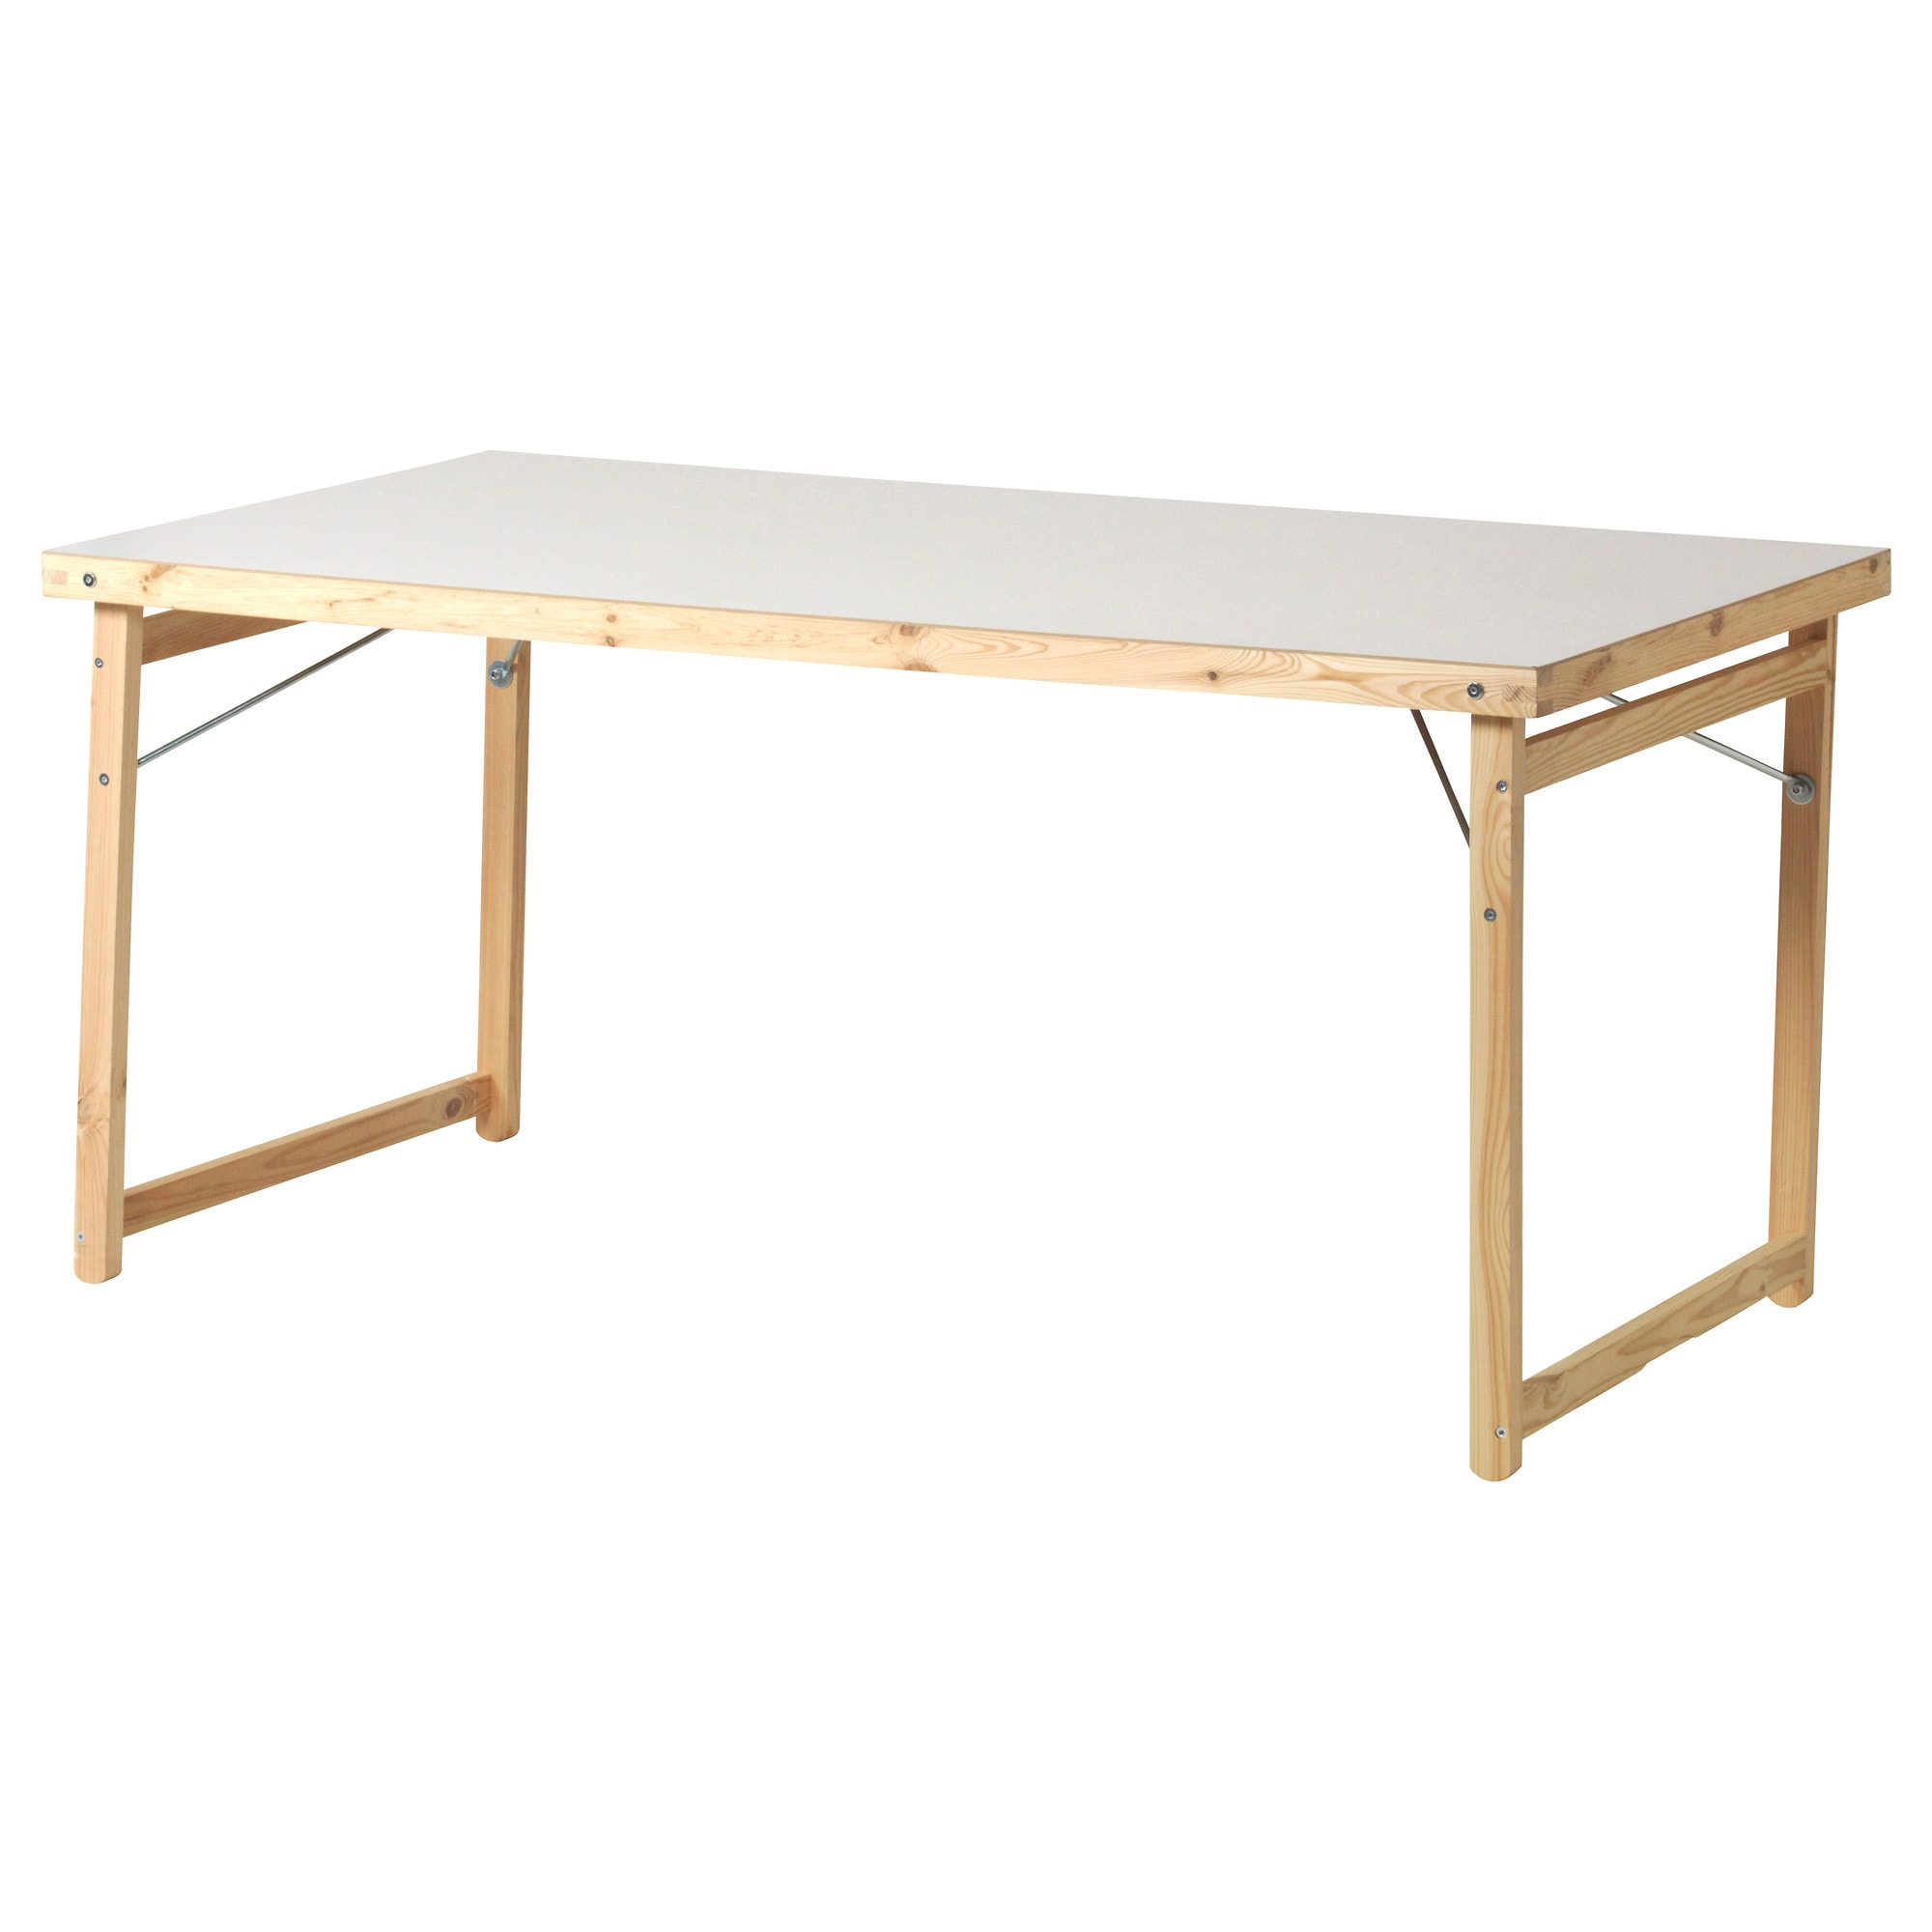 Table carree 8 personnes ikea 28 images pin table for Table salle a manger 8 personnes